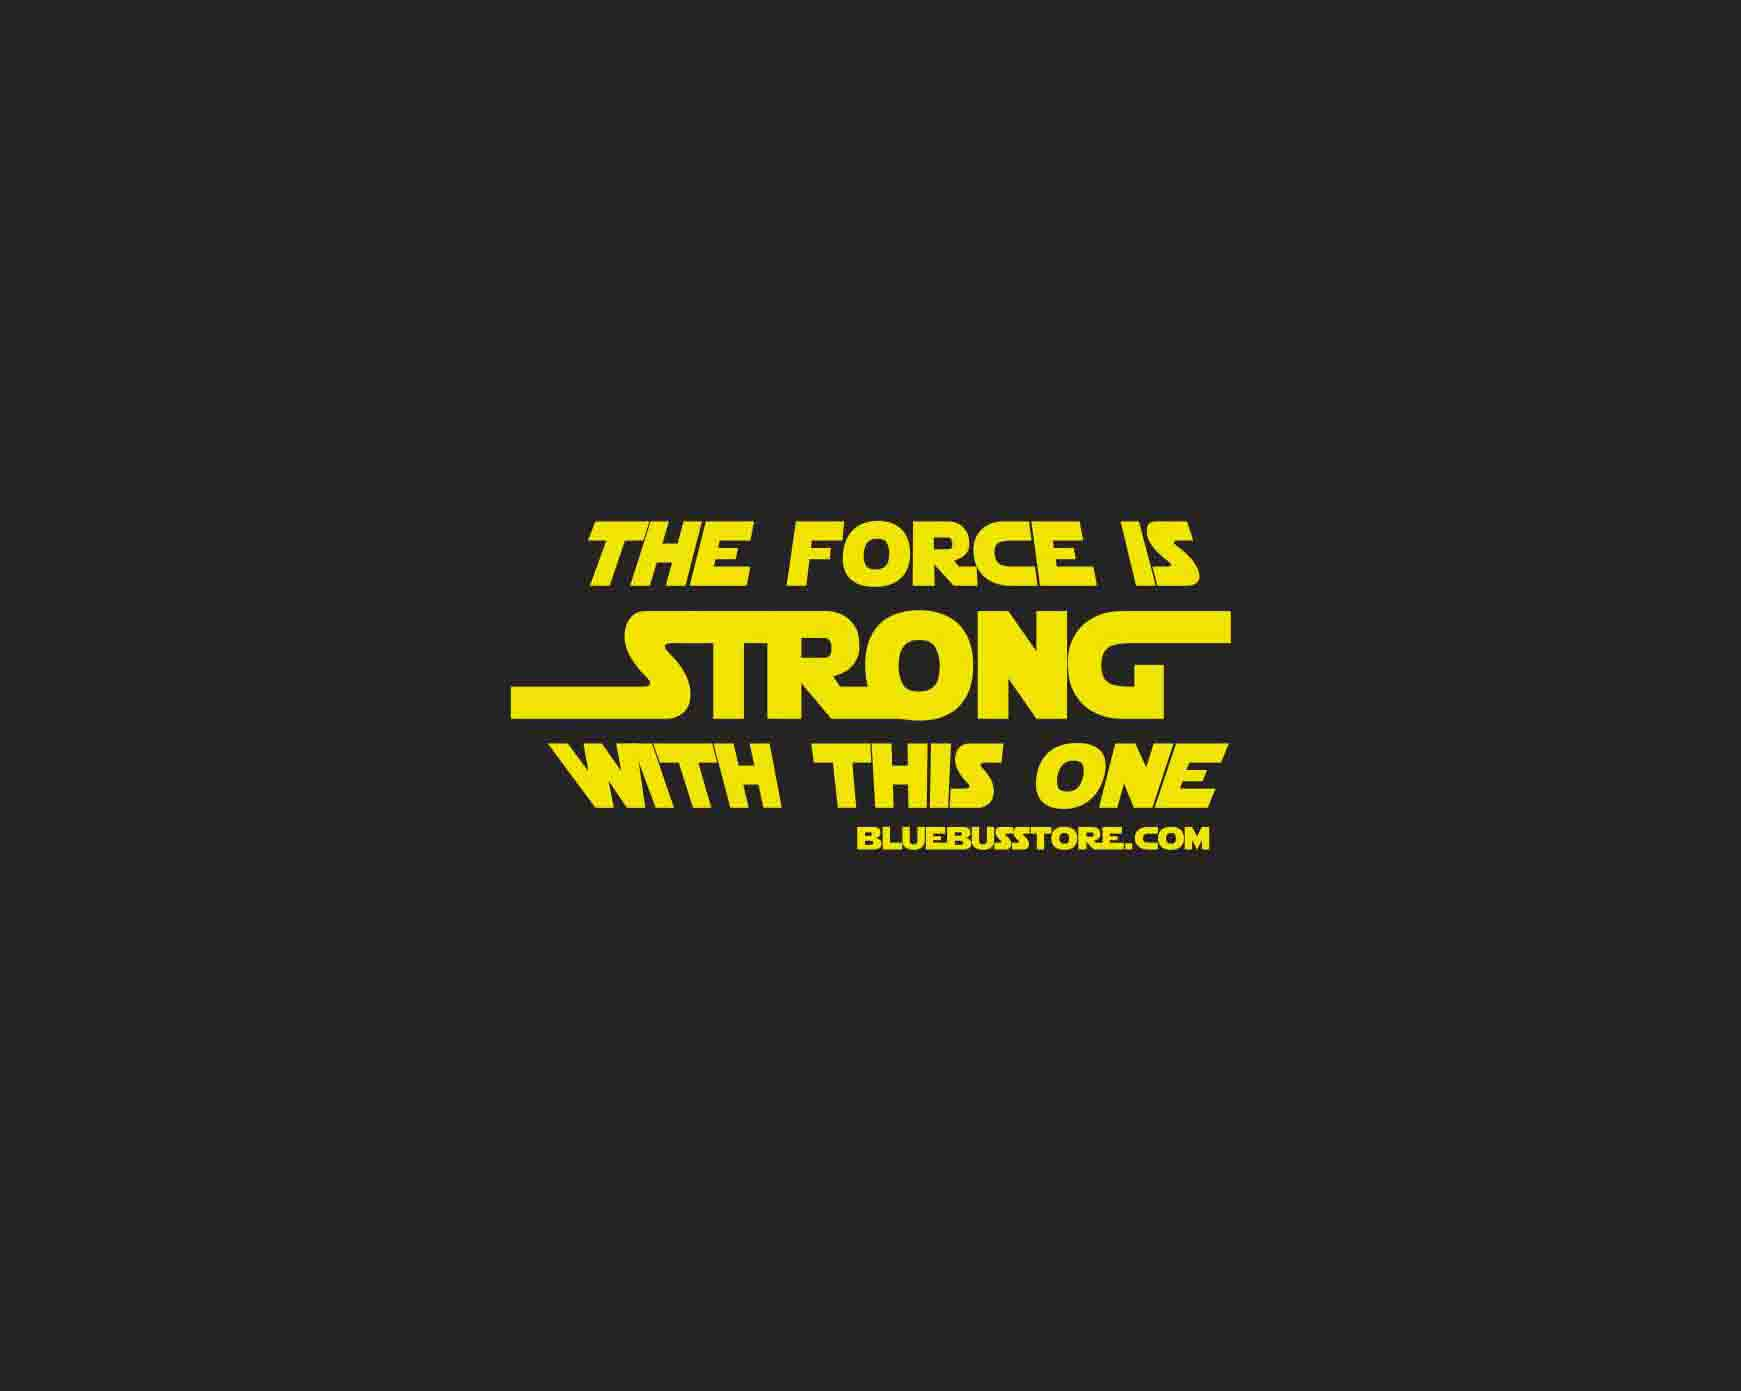 FORCE-IS-STRONG